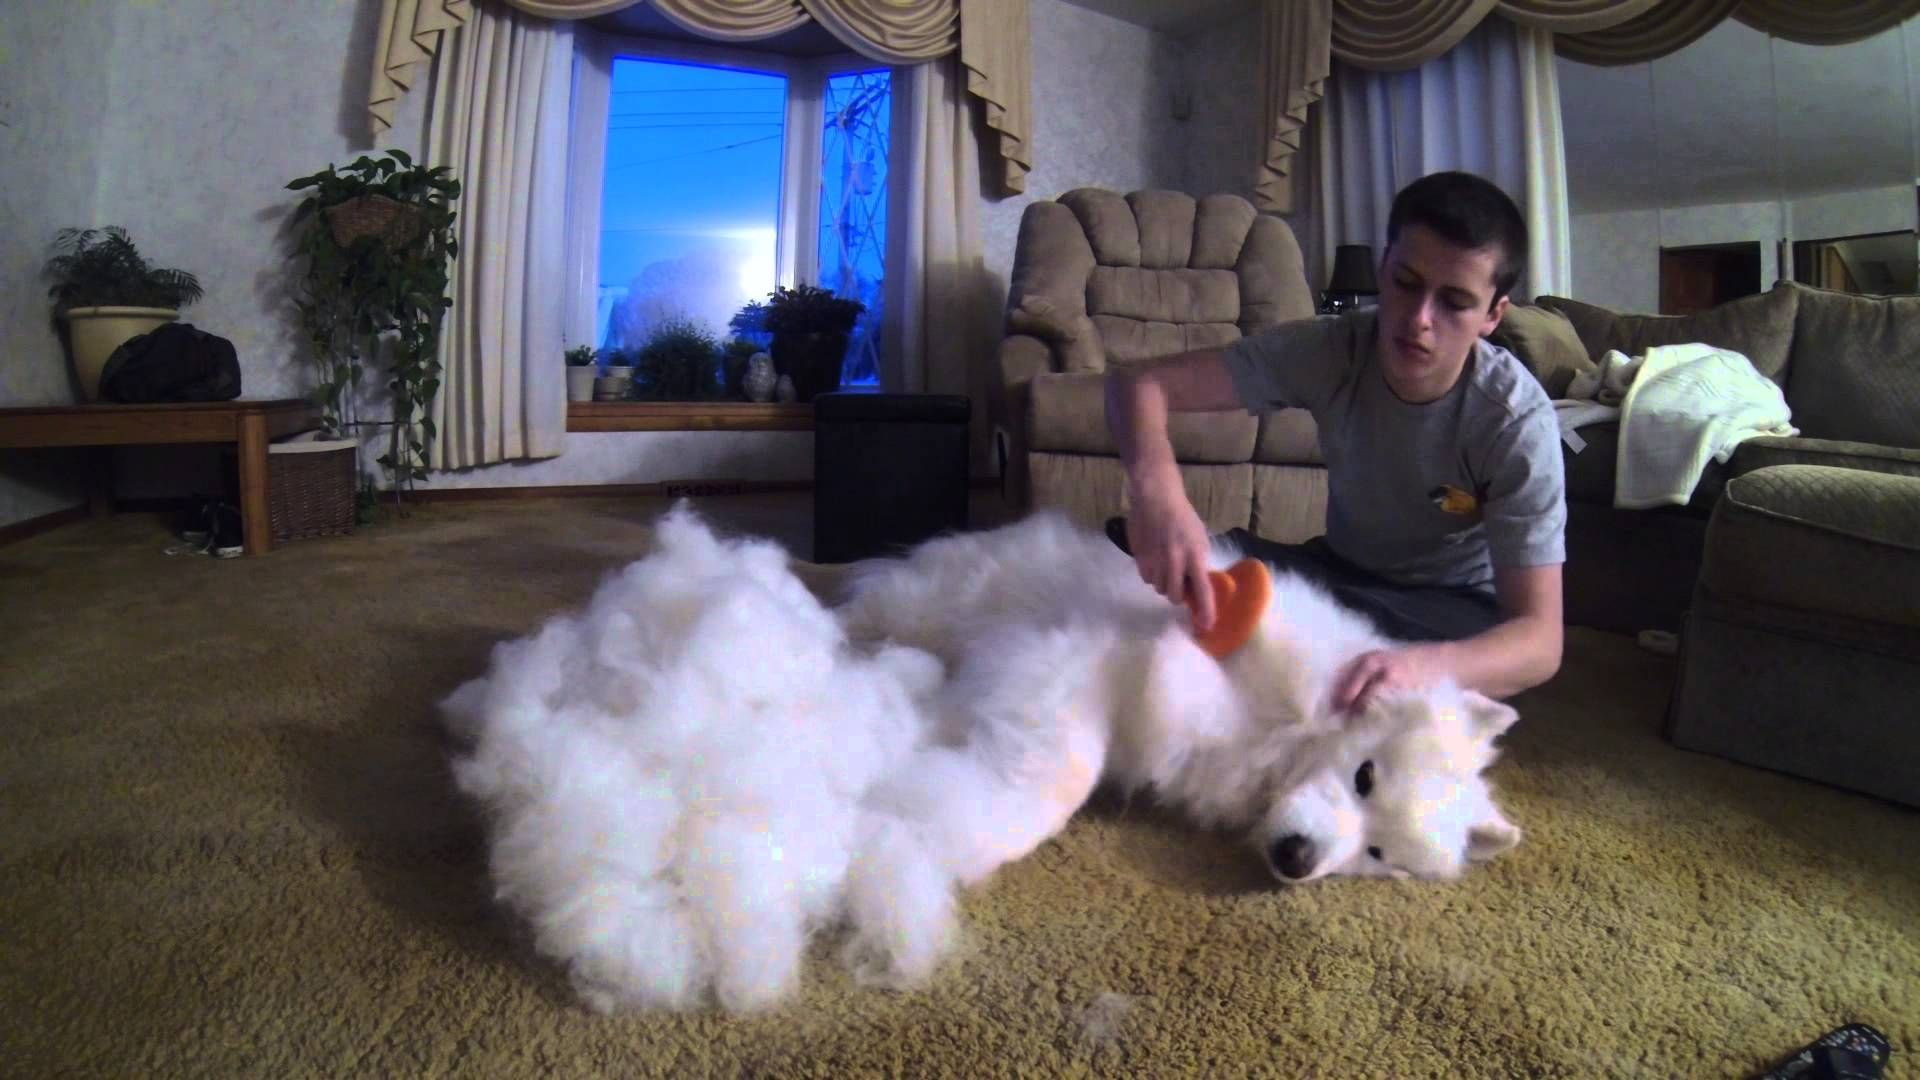 Thats A Lot Of Dog Hair Lol Samoyed Dogs Dog Hair